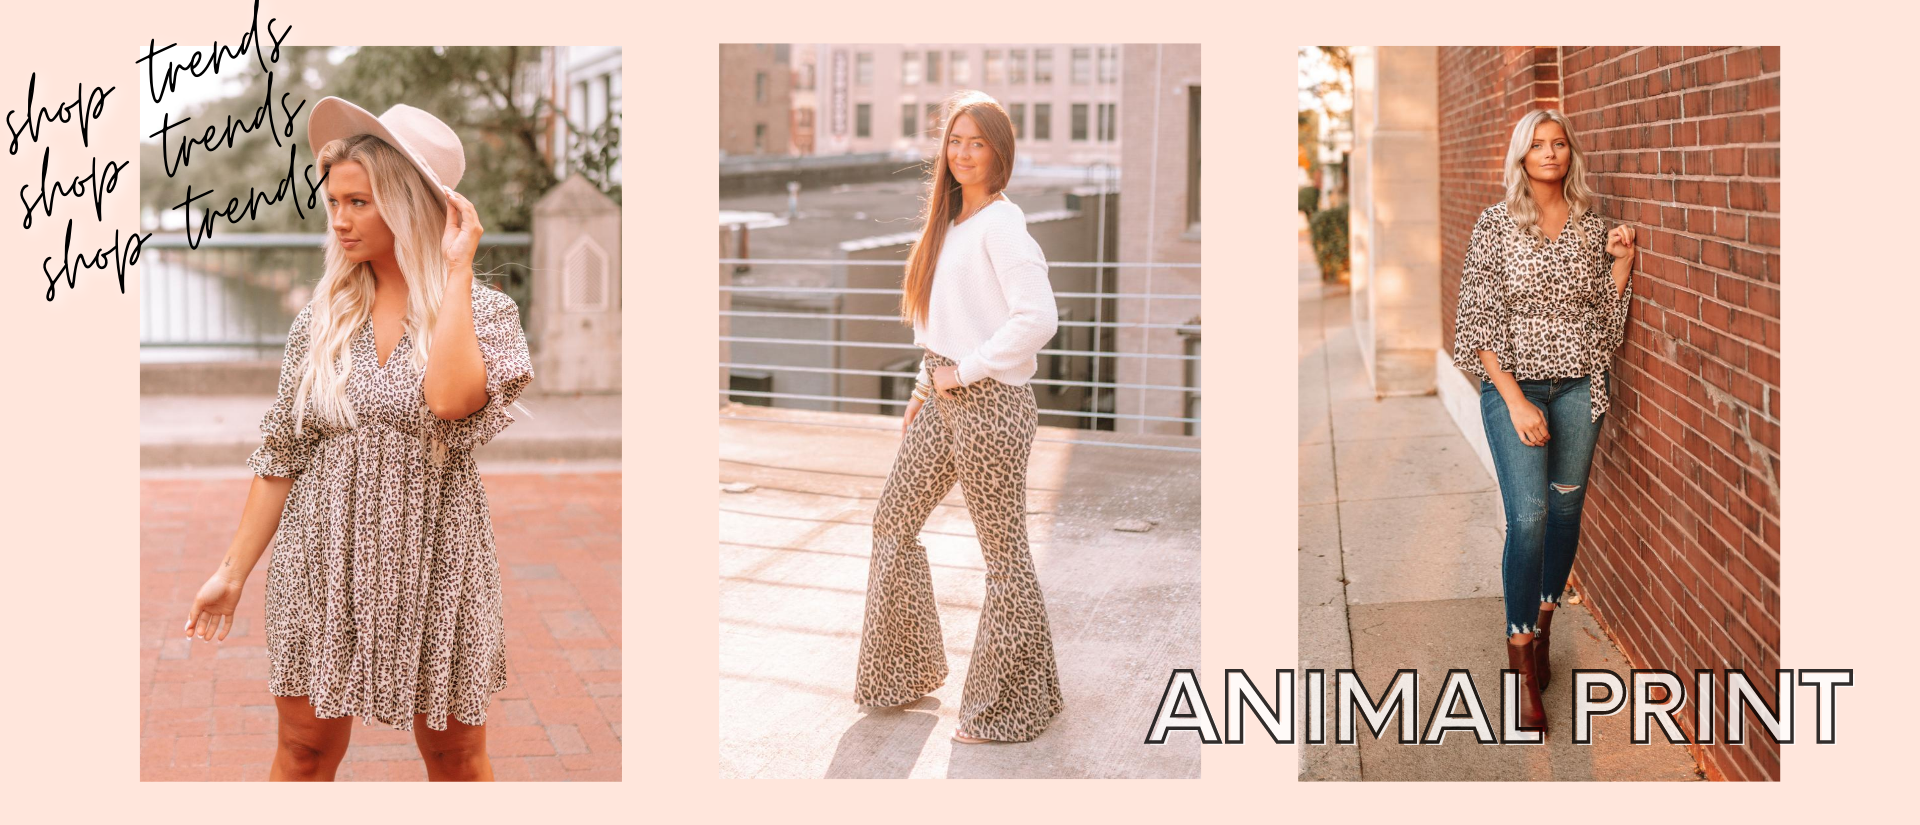 Shop What's Trending: Animal Prints